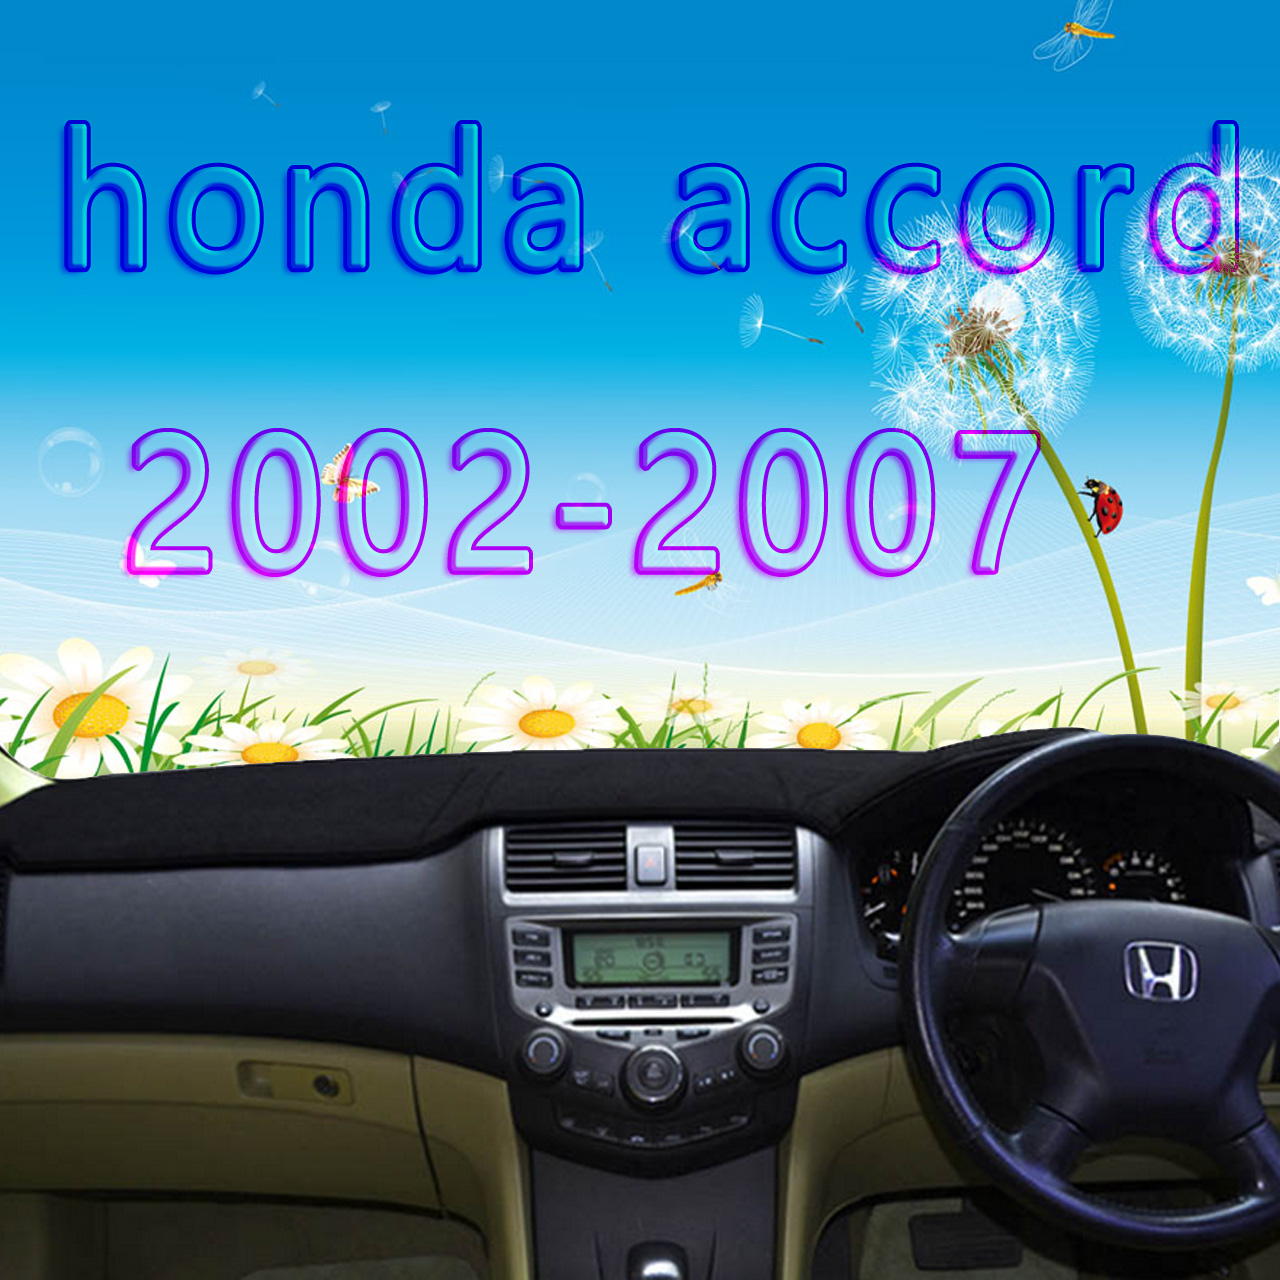 dashmats car-styling accessories dashboard <font><b>cover</b></font> for <font><b>honda</b></font> <font><b>accord</b></font> 2002 2003 2004 2005 2006 <font><b>2007</b></font> generation rhd image